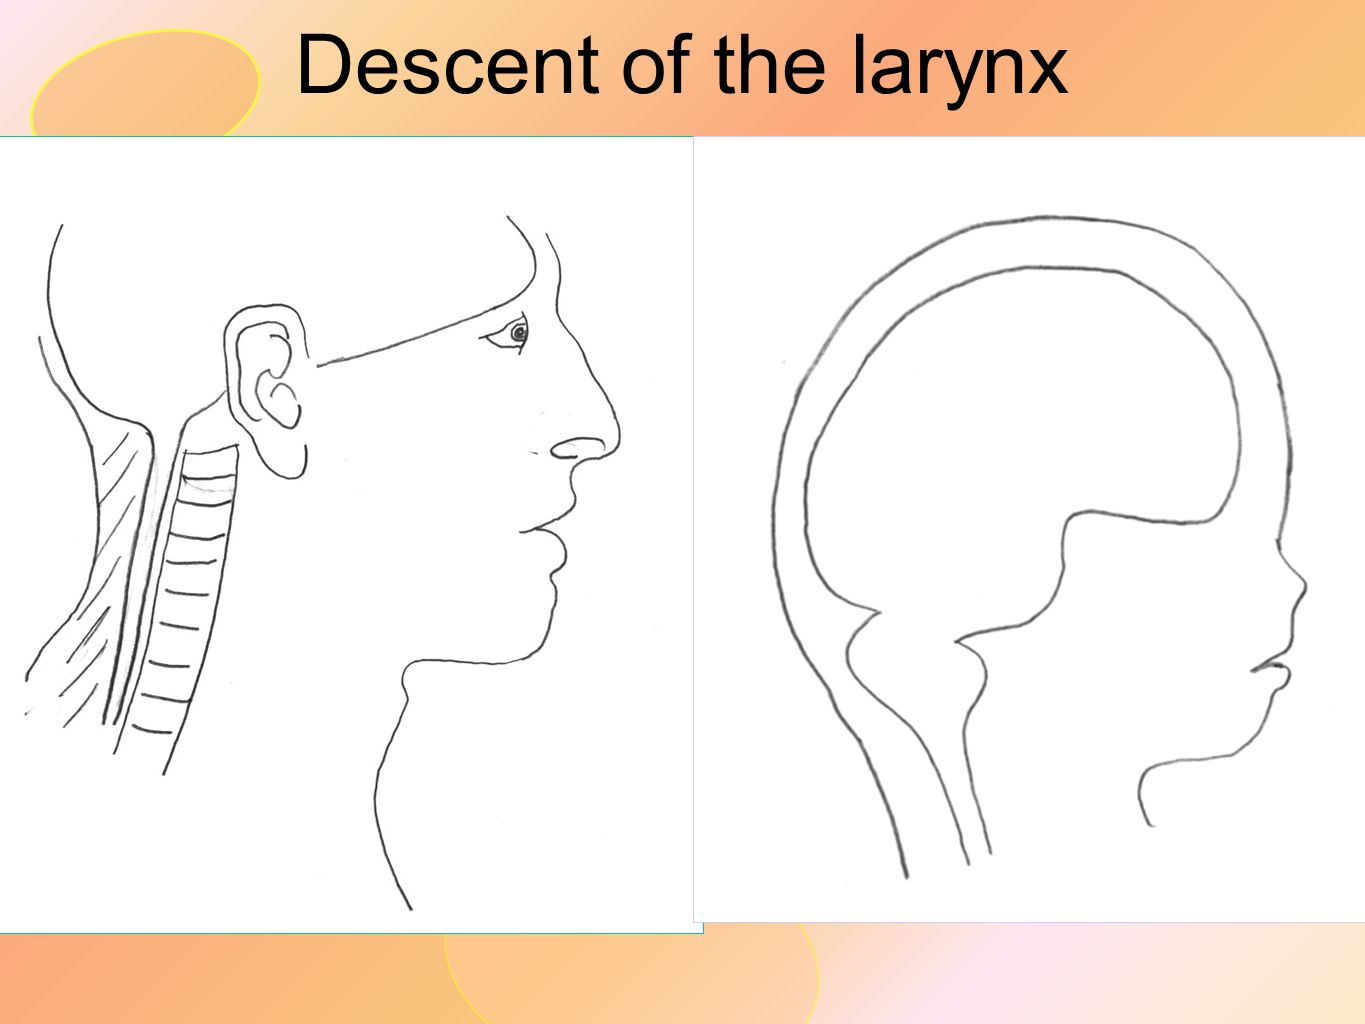 Descent of the larynx